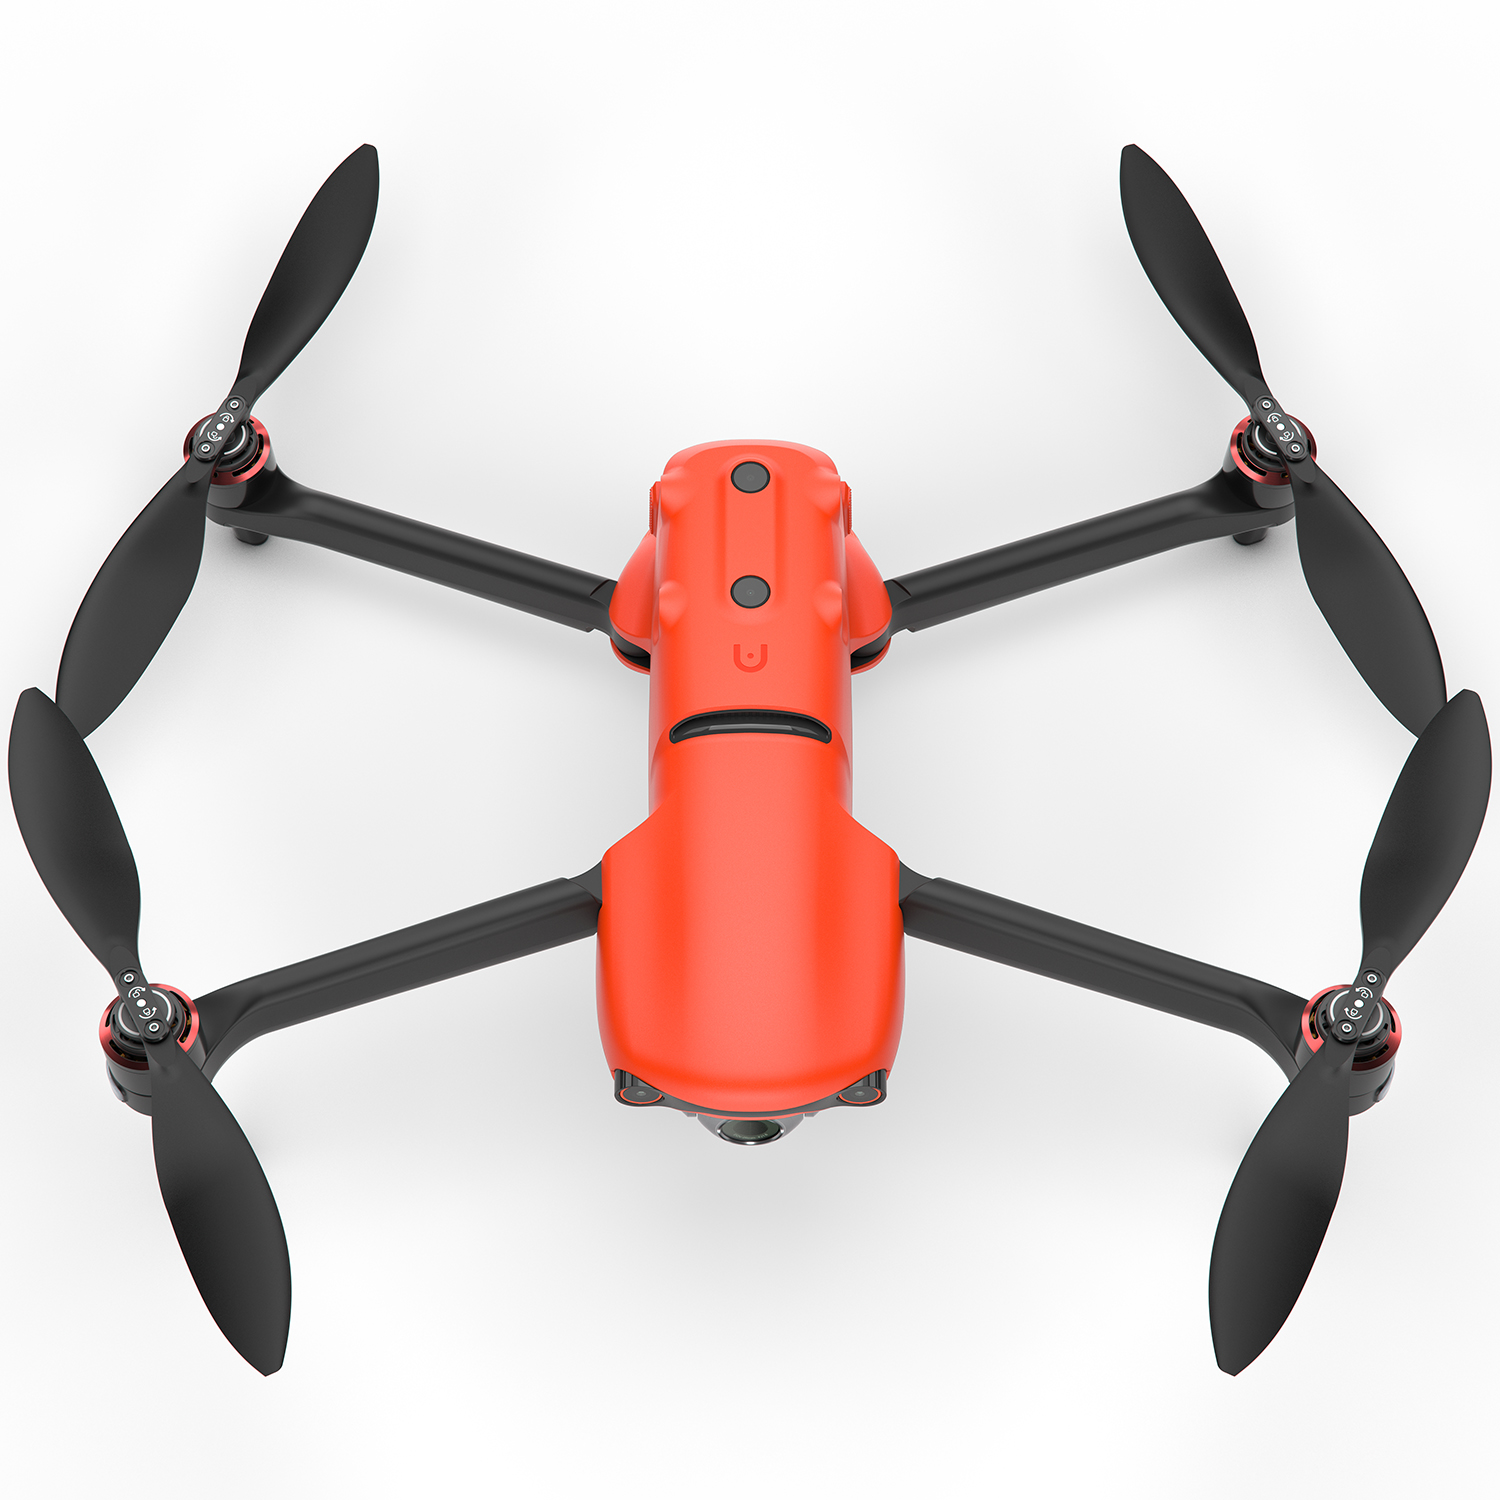 Autel Robotics Evo II Drone with 8K Camera, HDR Video, 48MP, 7100 mAh Battery, 9 KM Range